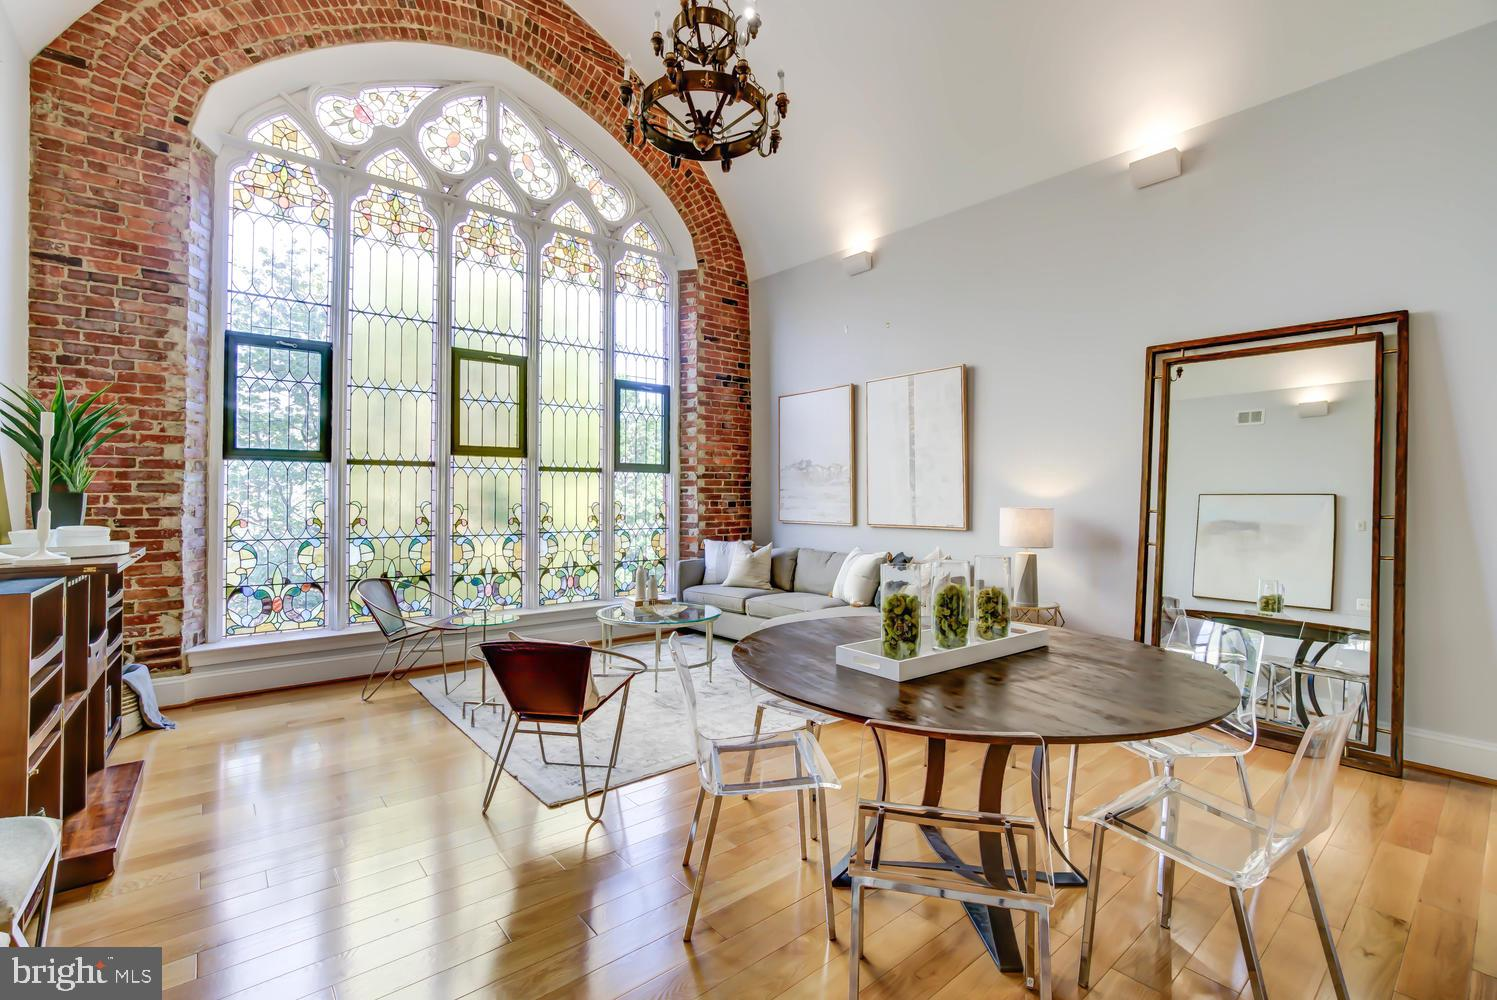 NEW LISTING! OPEN SUN 7/19 2-4 pm.  Welcome to The Sanctuary. Located in the Stanton Park neighborho